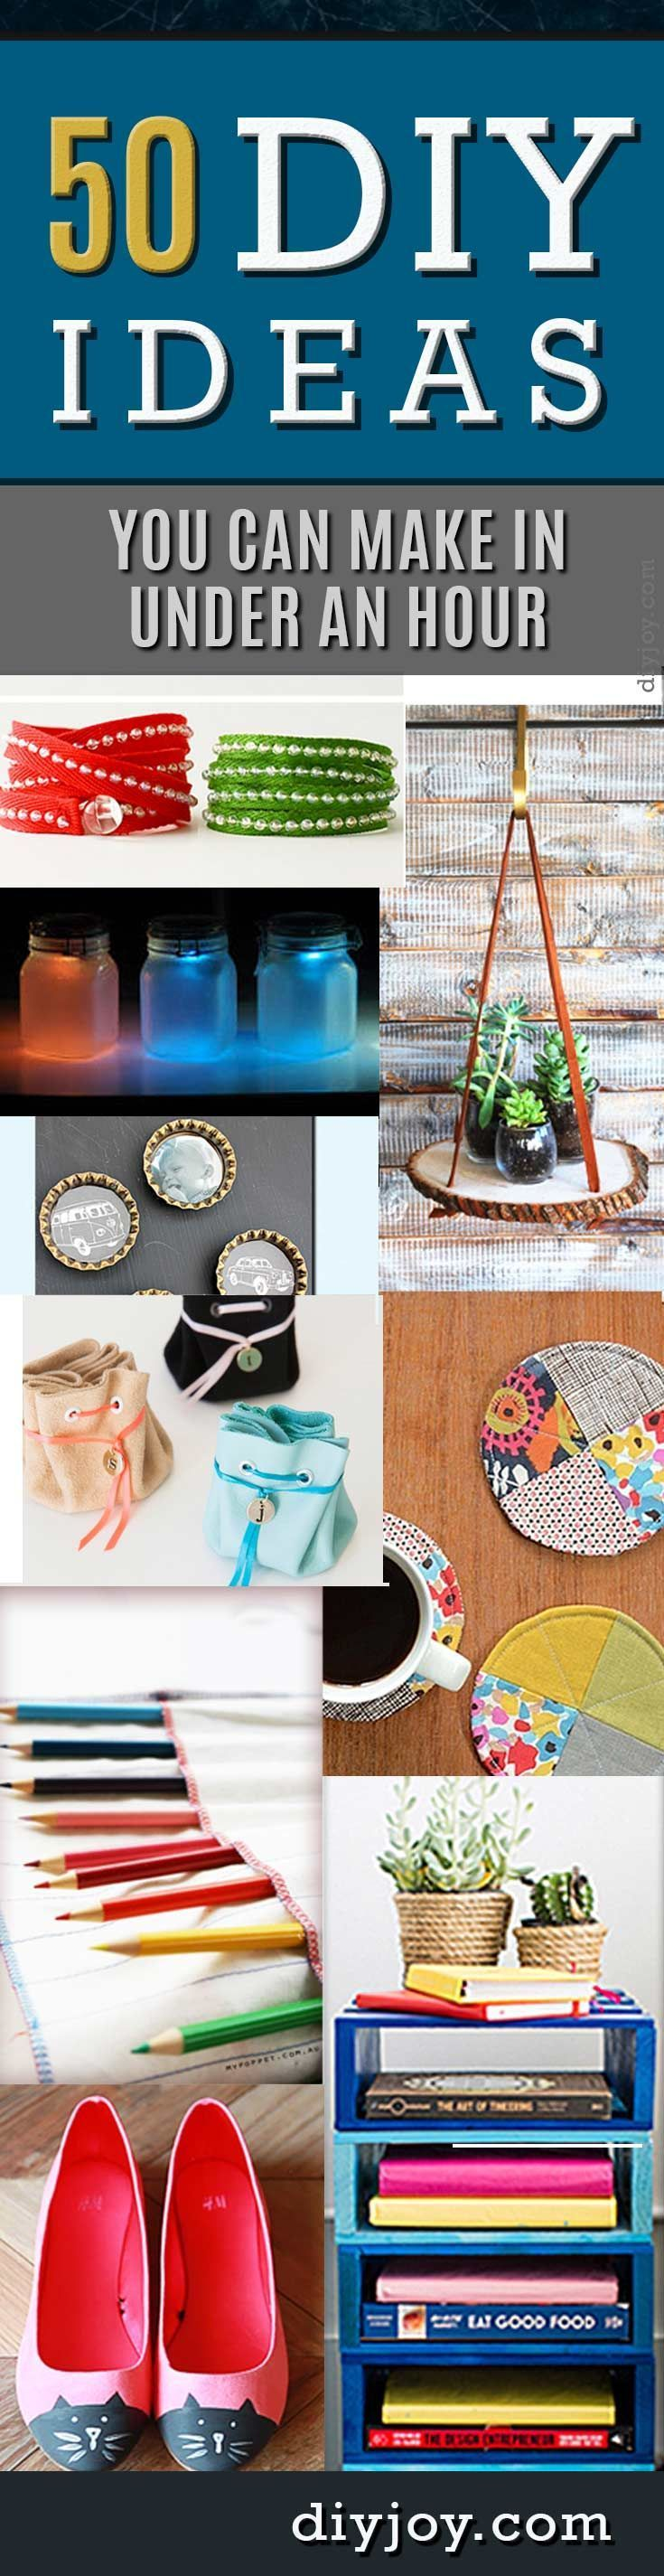 50 diy projects you can make in under an hour diy ideas fast diy projects and easy crafts ideas you can make in under an hour solutioingenieria Gallery